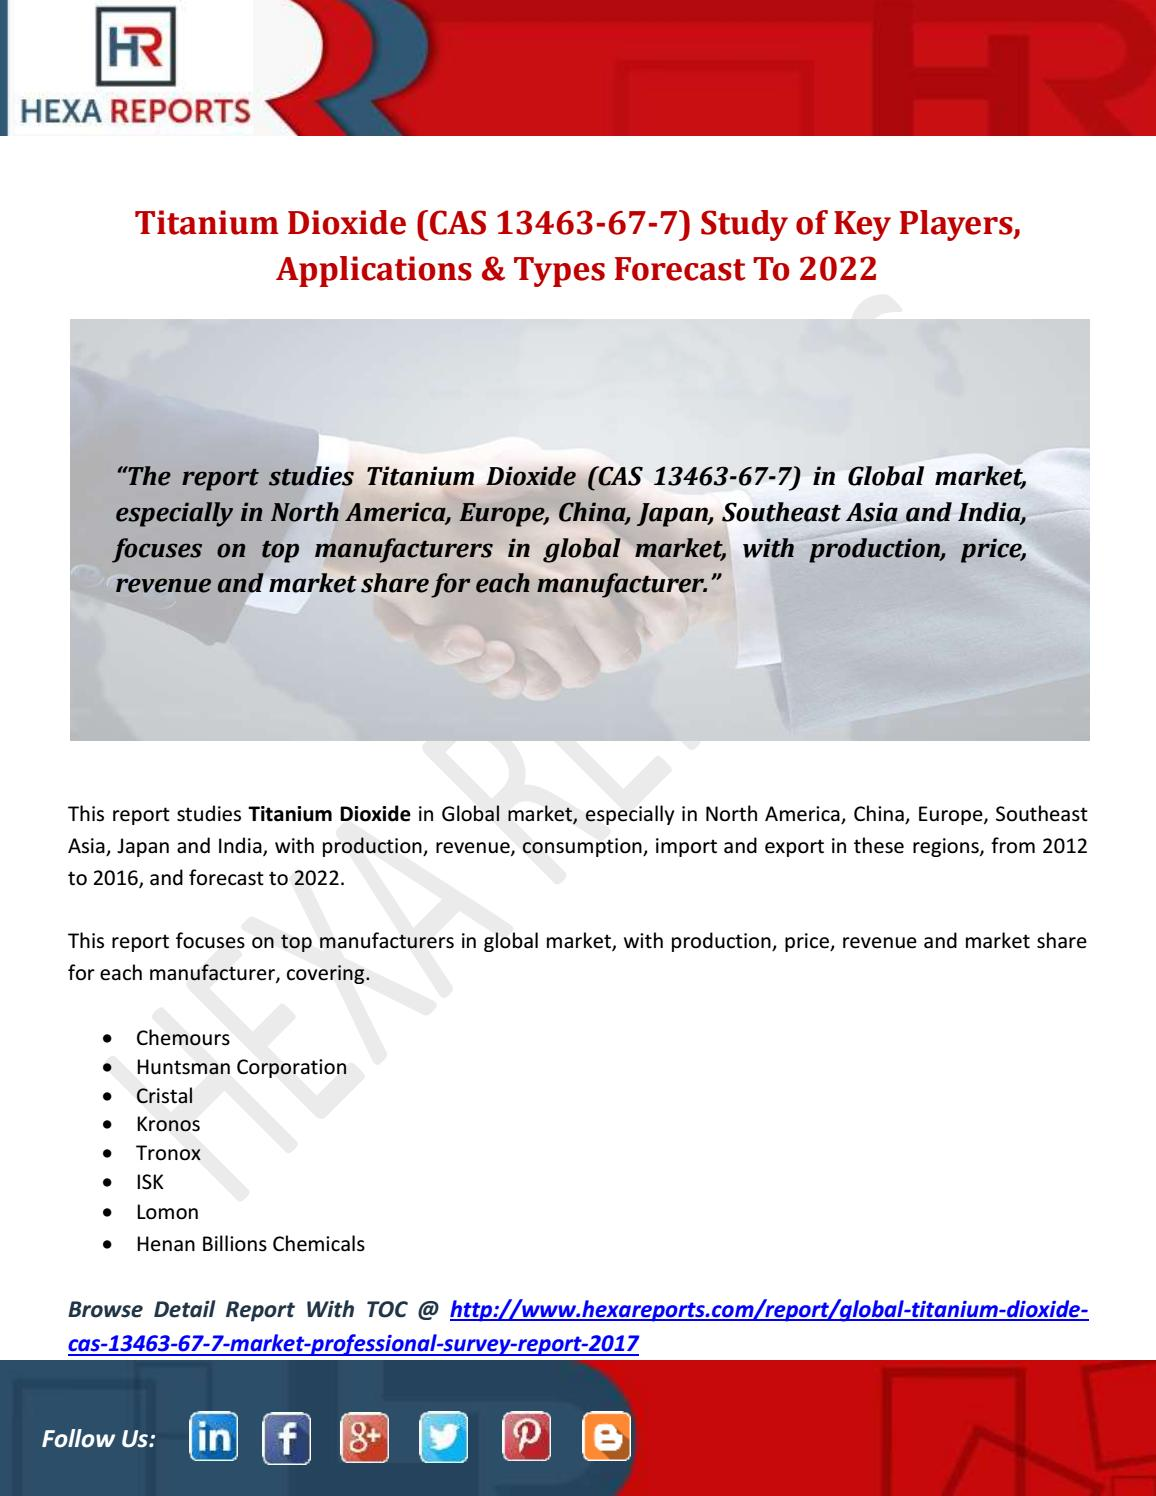 Titanium Dioxide (CAS 13463-67-7) Study of Key Players, Applications